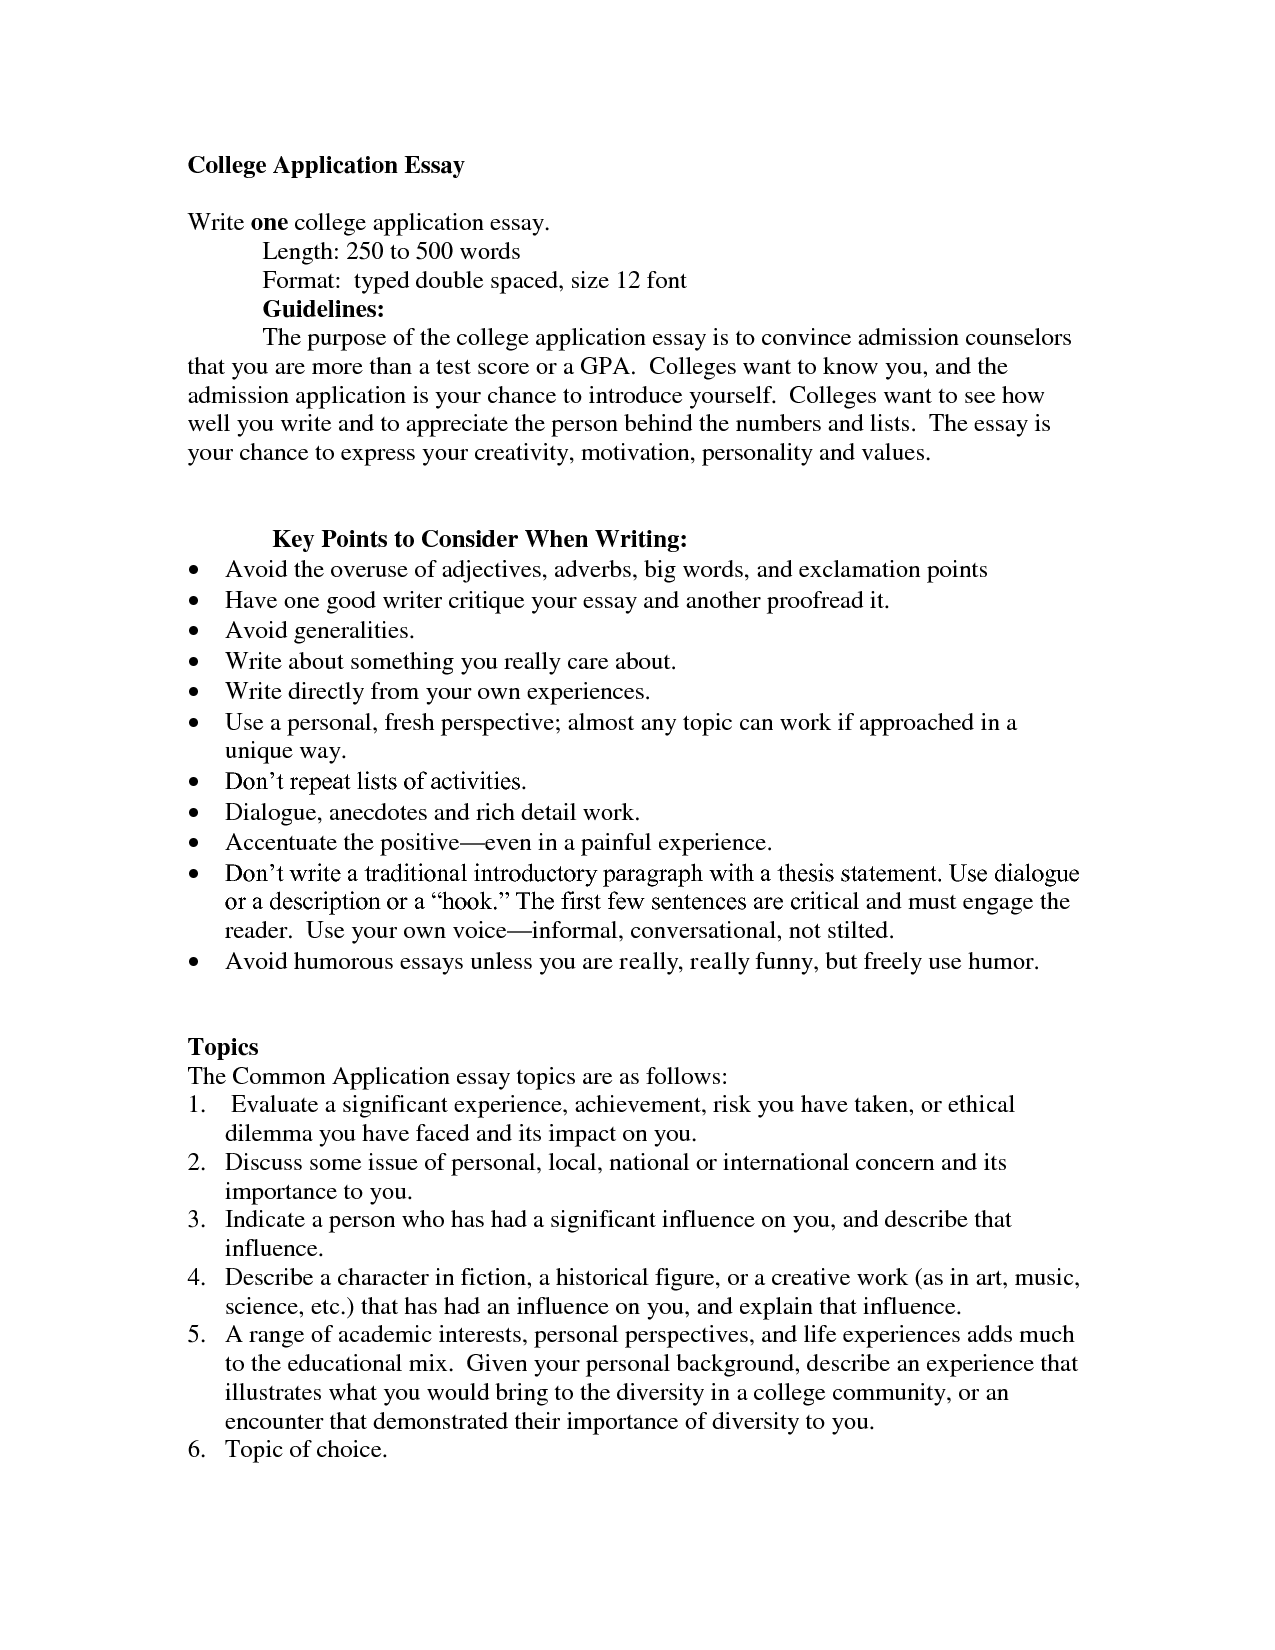 college essays community college essay template how to structure a  also college essays suggested formats how to write an amazing college essay homedesign decor home interior